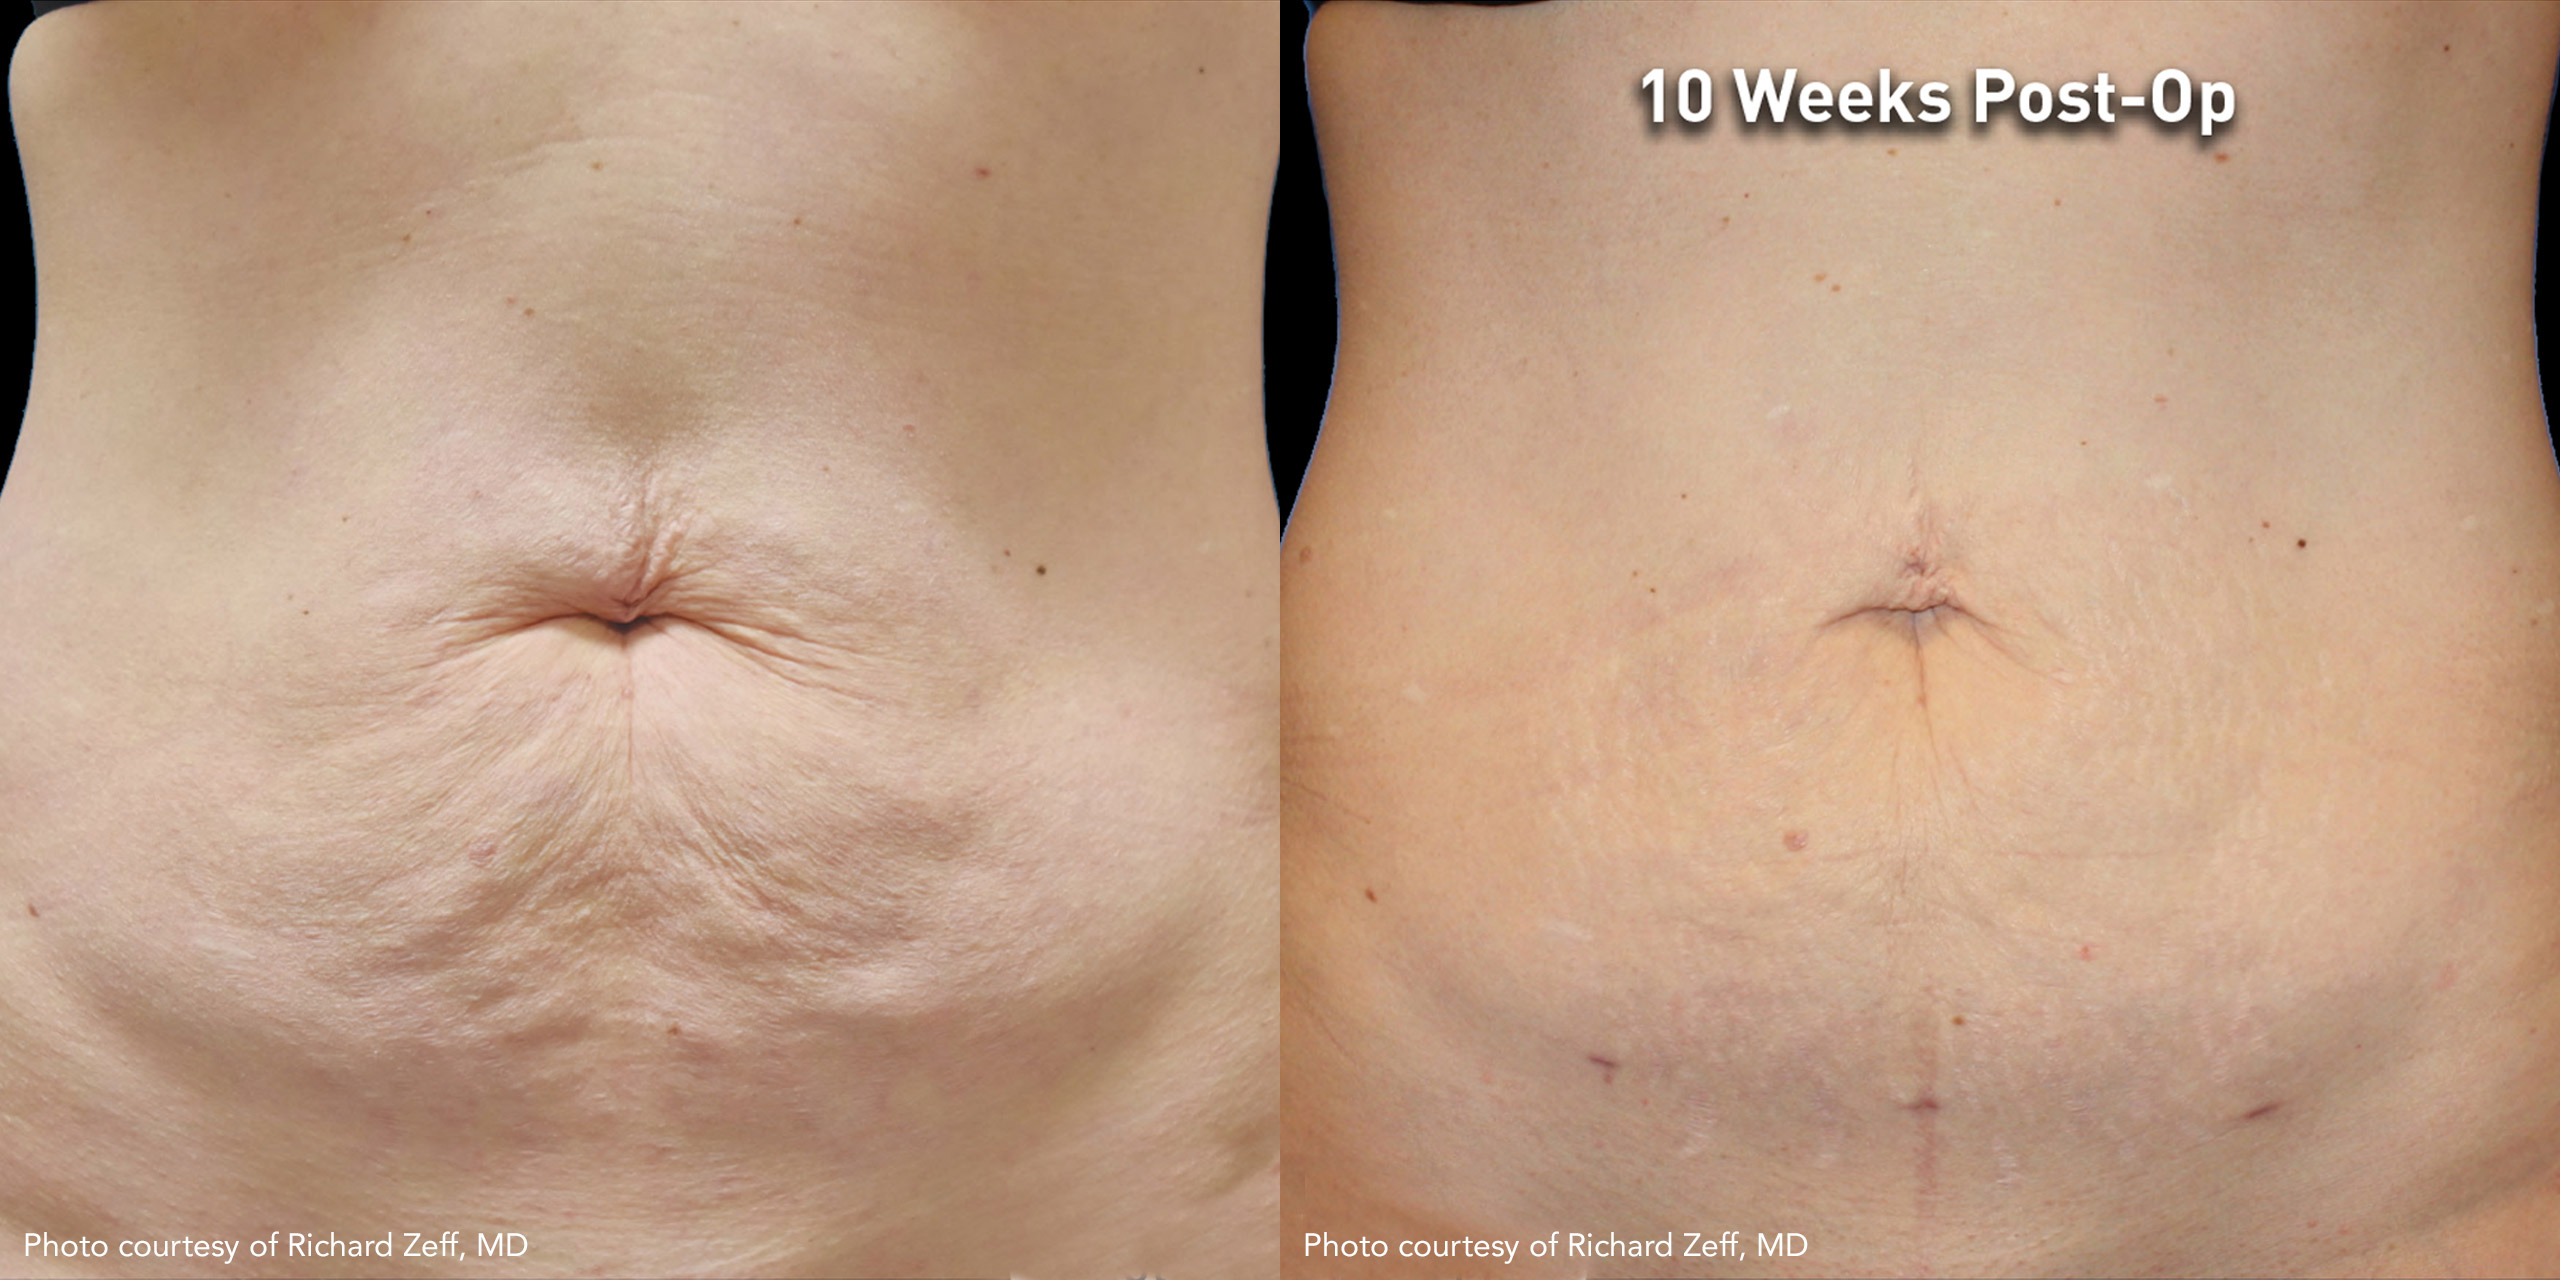 Subdermal Skin Tightening of the abdomen Using JPlasma